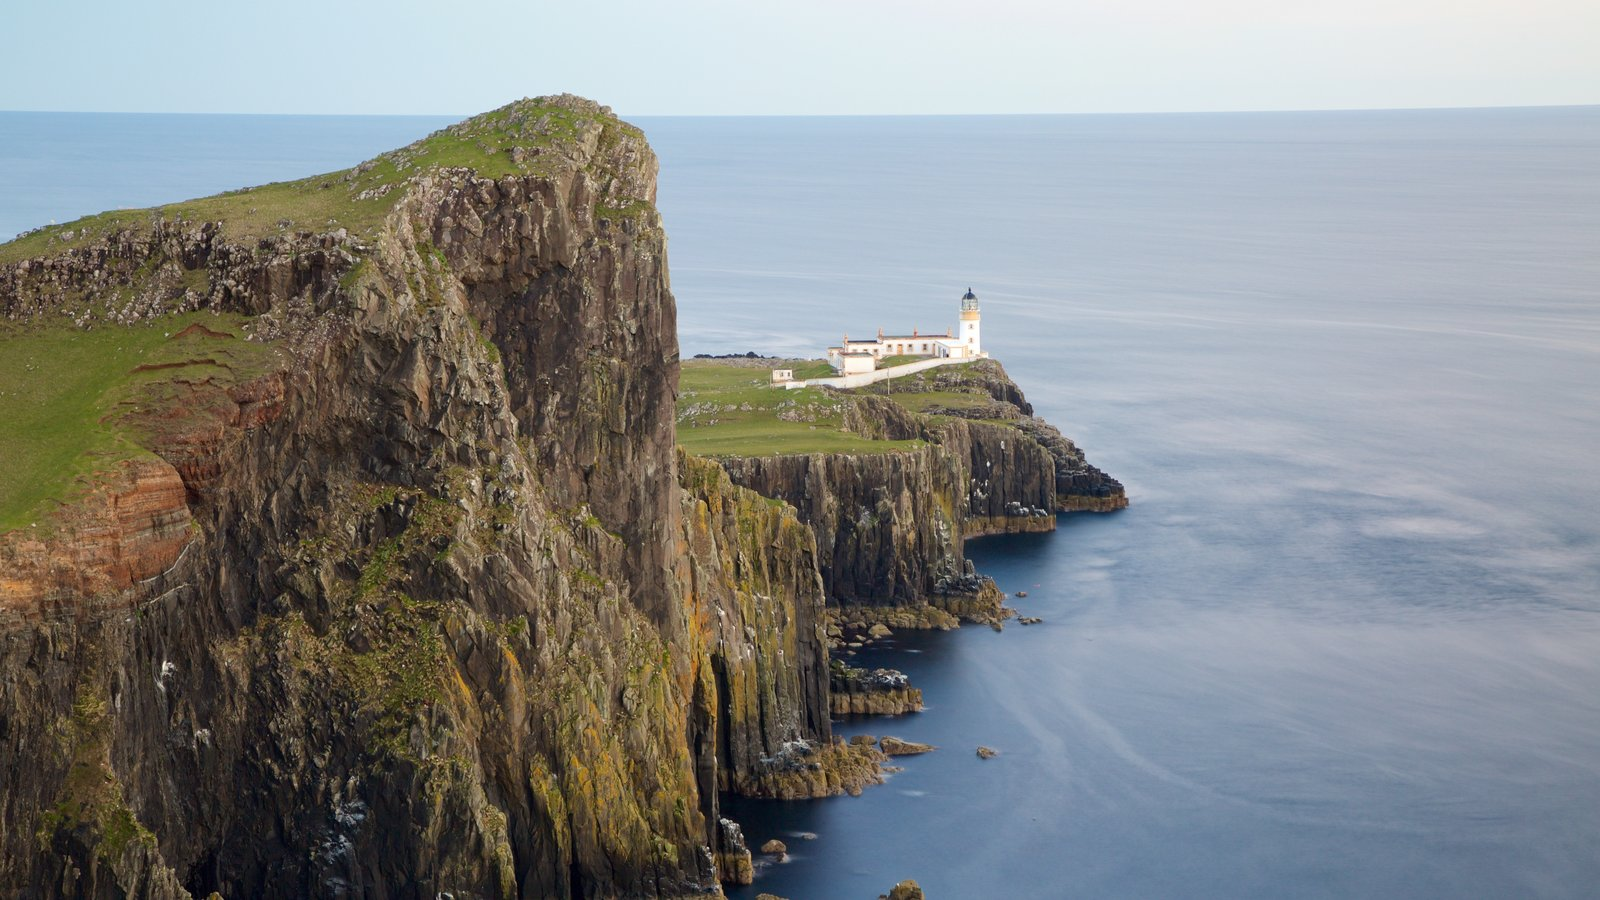 Isle of Skye showing rocky coastline and a lighthouse